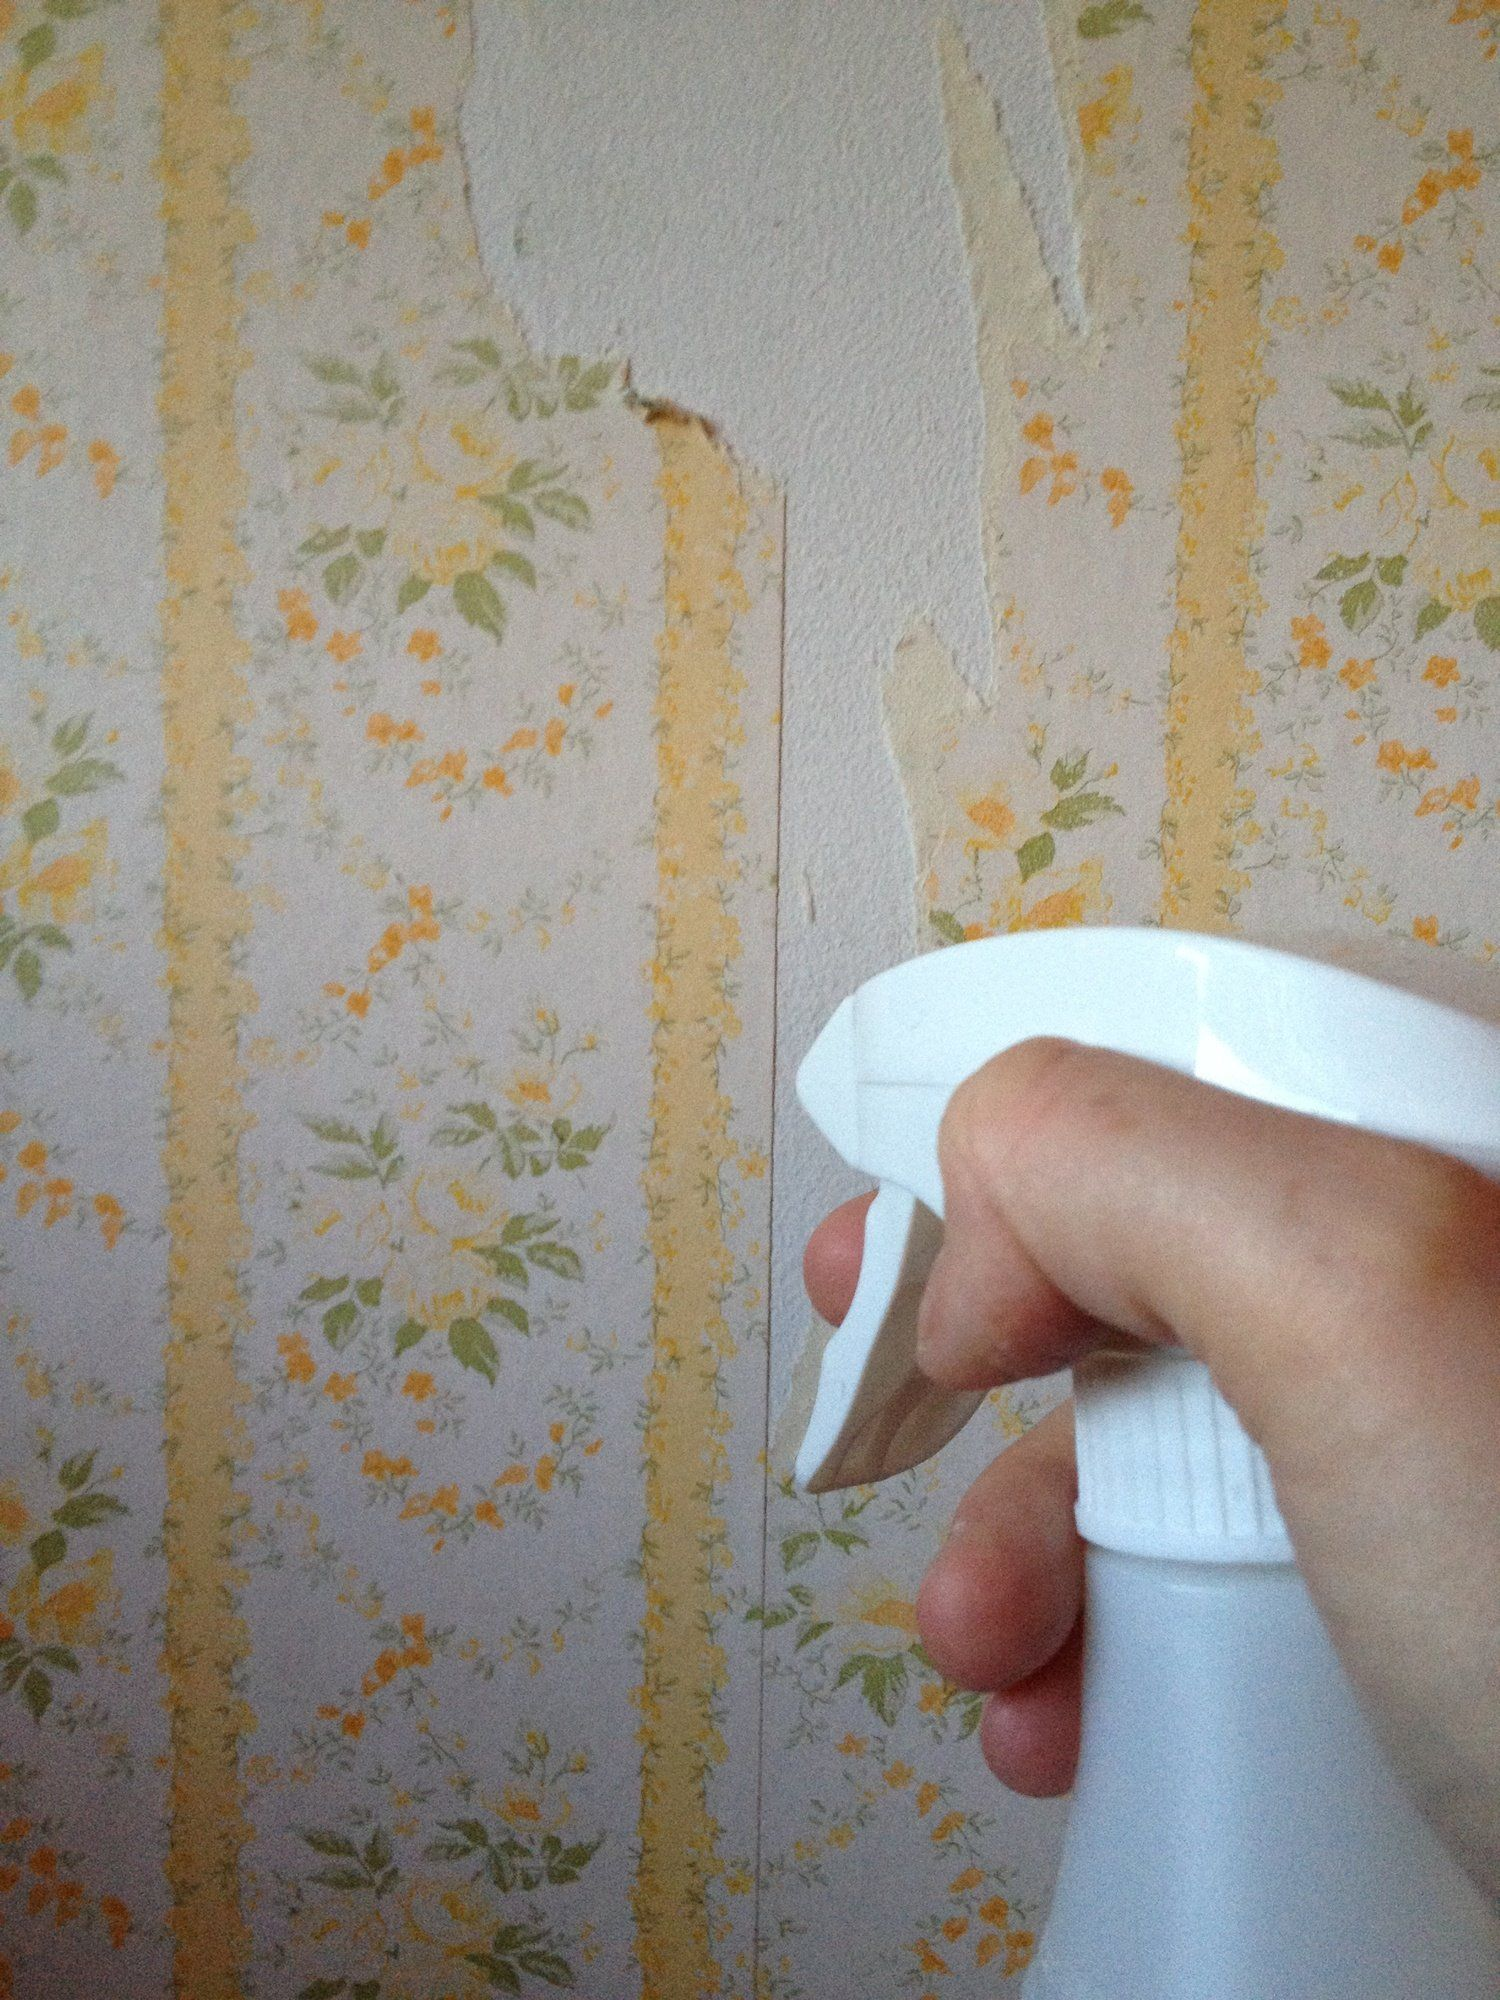 Easy All Natural Wallpaper Removal Tip Use Vinegar And Hot Water Diy Wallpaper Remove Wallpaper Glue Removable Wallpaper